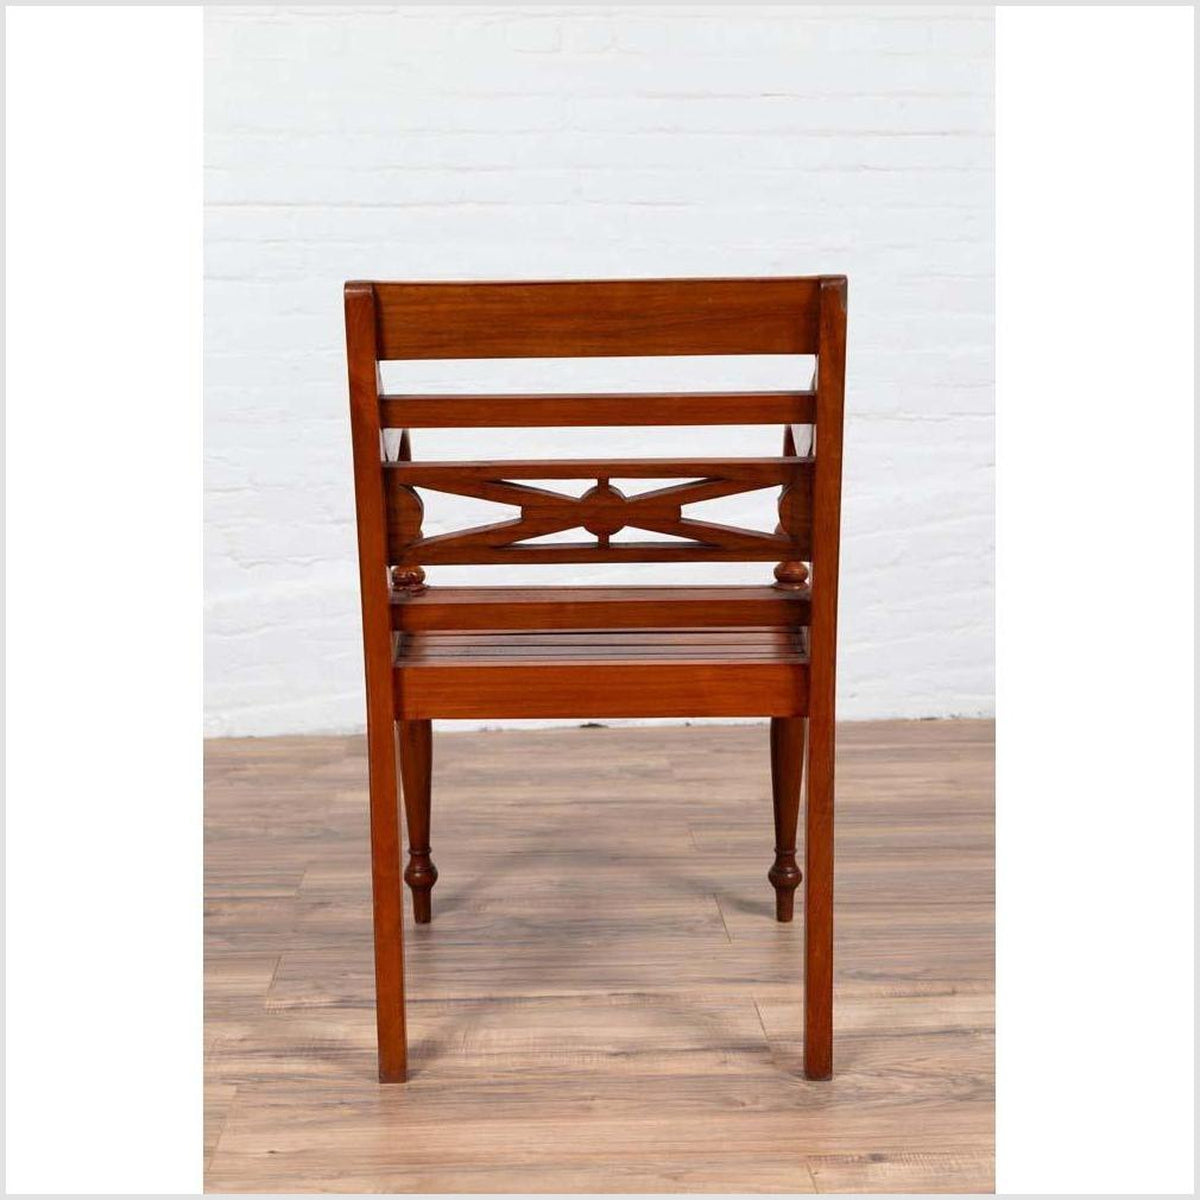 Early 20th Century Captain's Chair from Bali with Slatted Wood